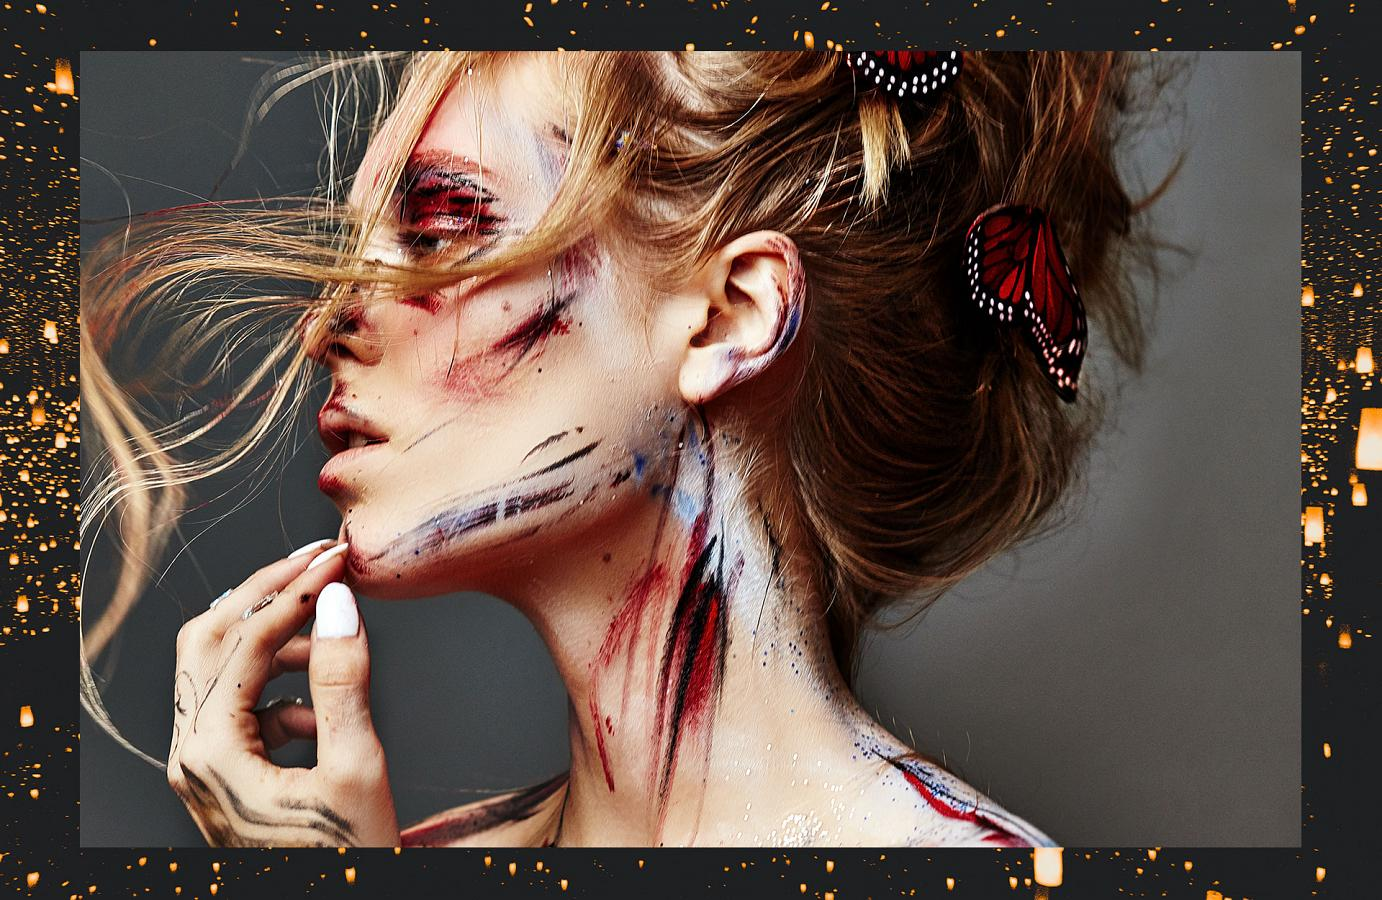 Blanche Macdonald Makeup Artist Shawnna Downing Creates Avant Garde Looks Around the World